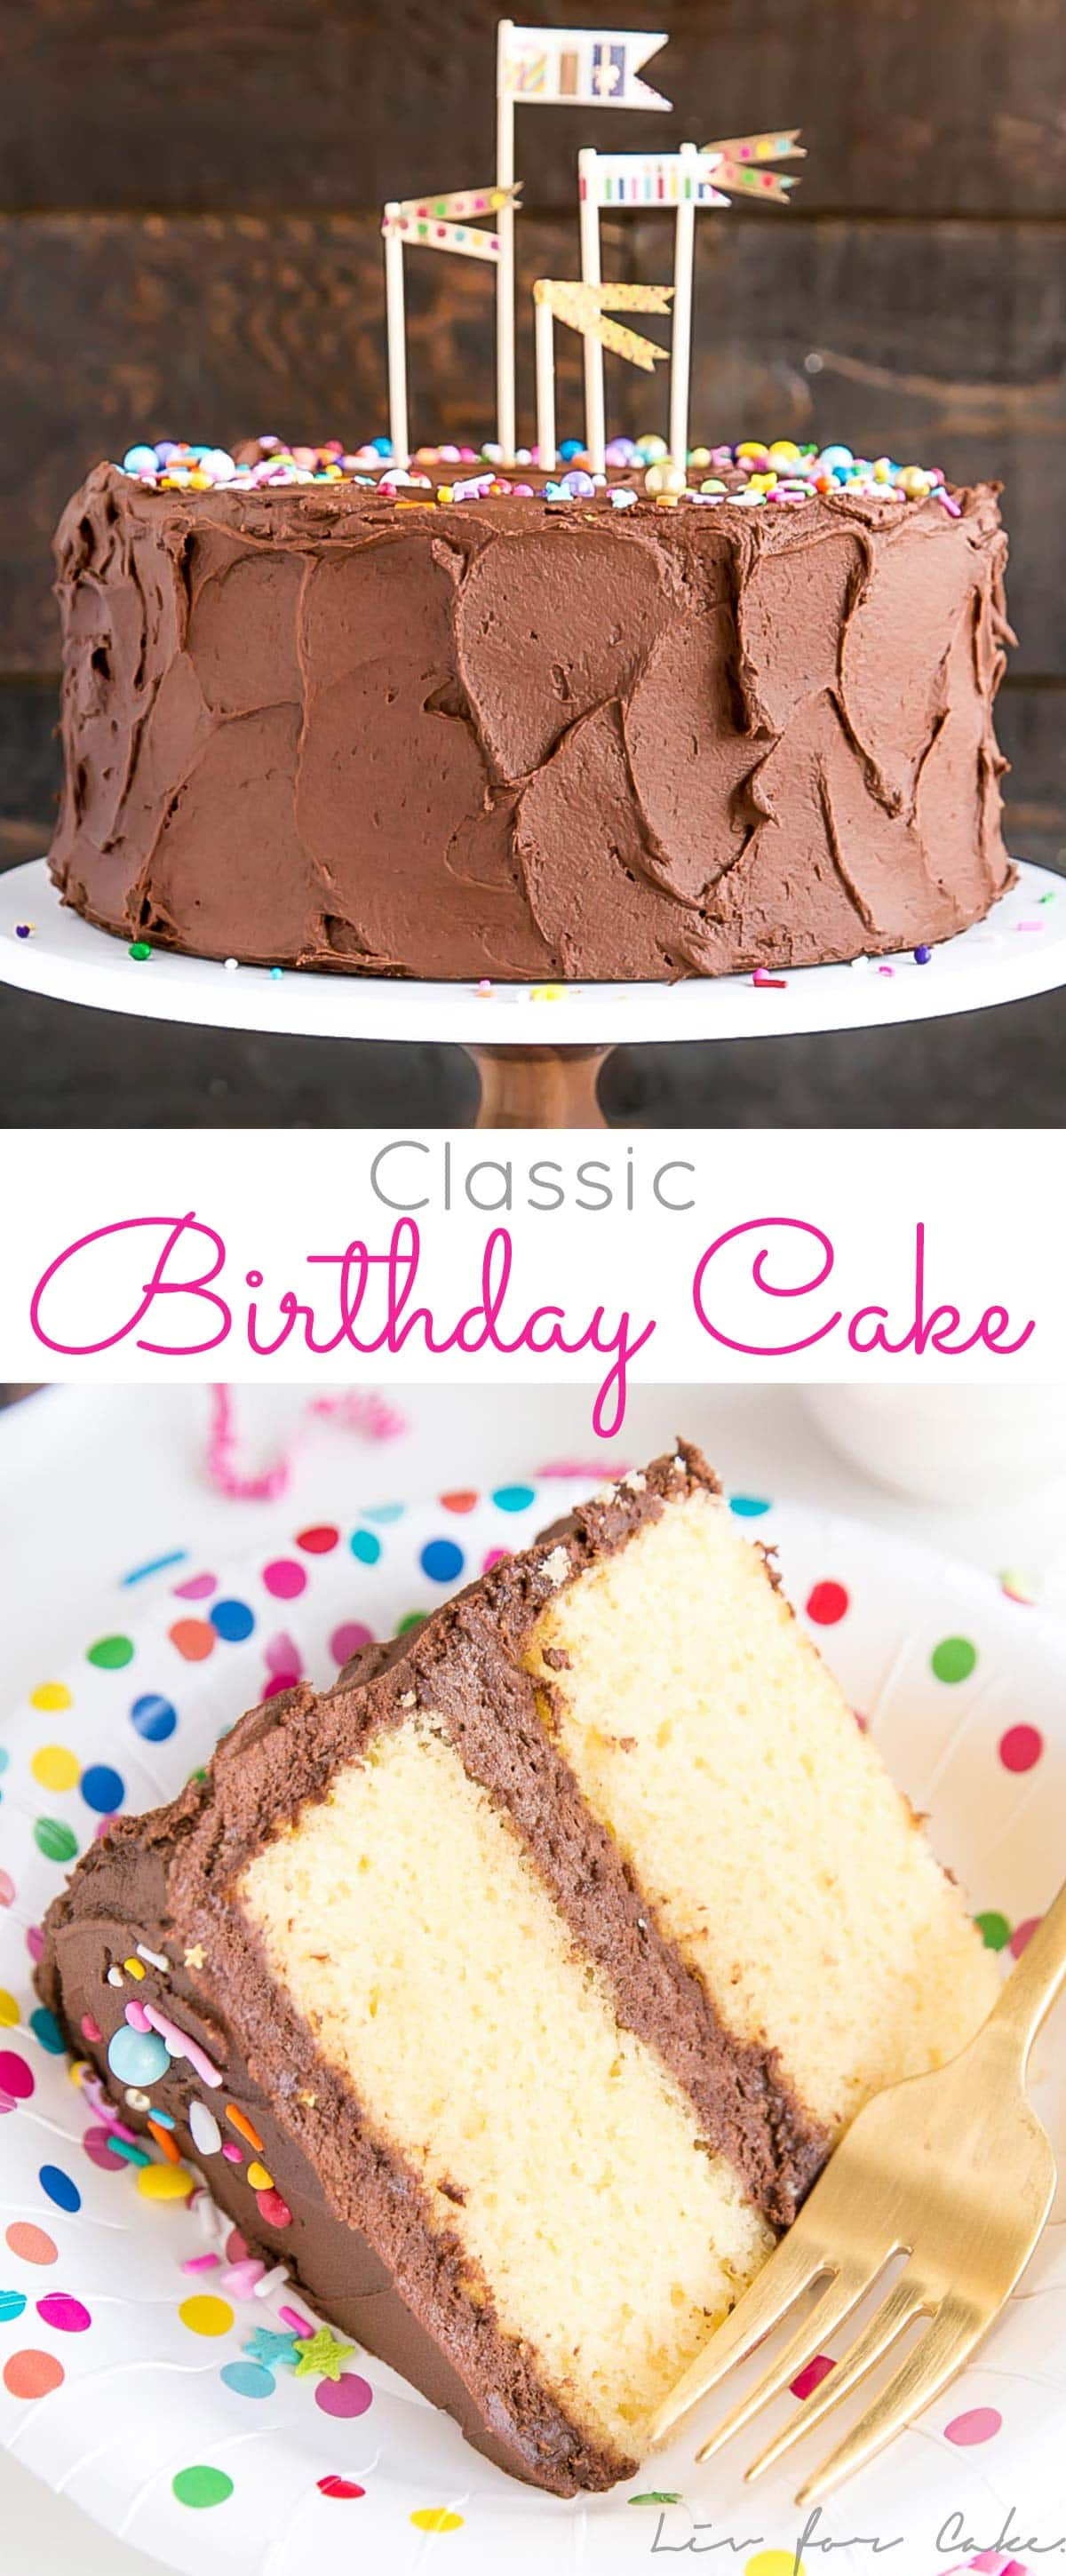 The ultimate birthday cake! A classic yellow cake with a rich chocolate frosting and colorful sprinkles. | livforcake.com